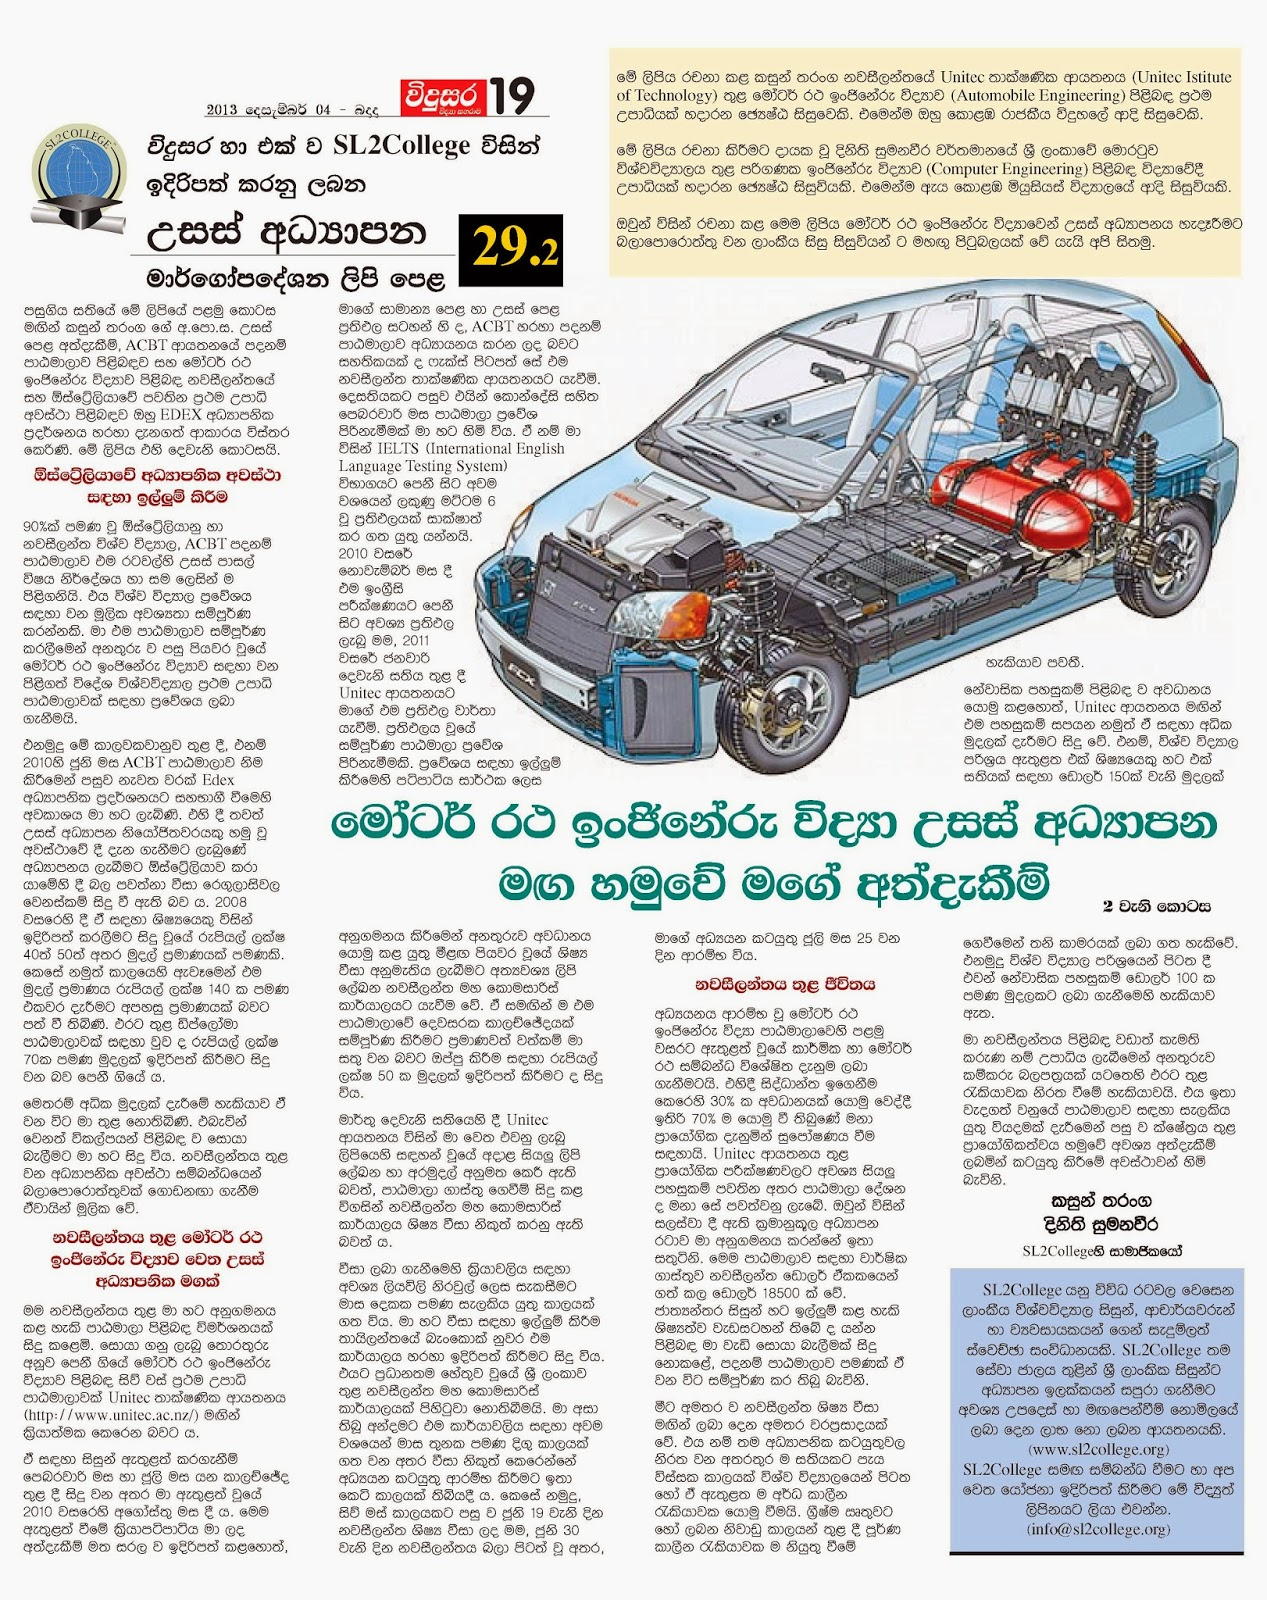 Automobile Engineering For Sl2college Vidusara My Educational Experience In The Field Of